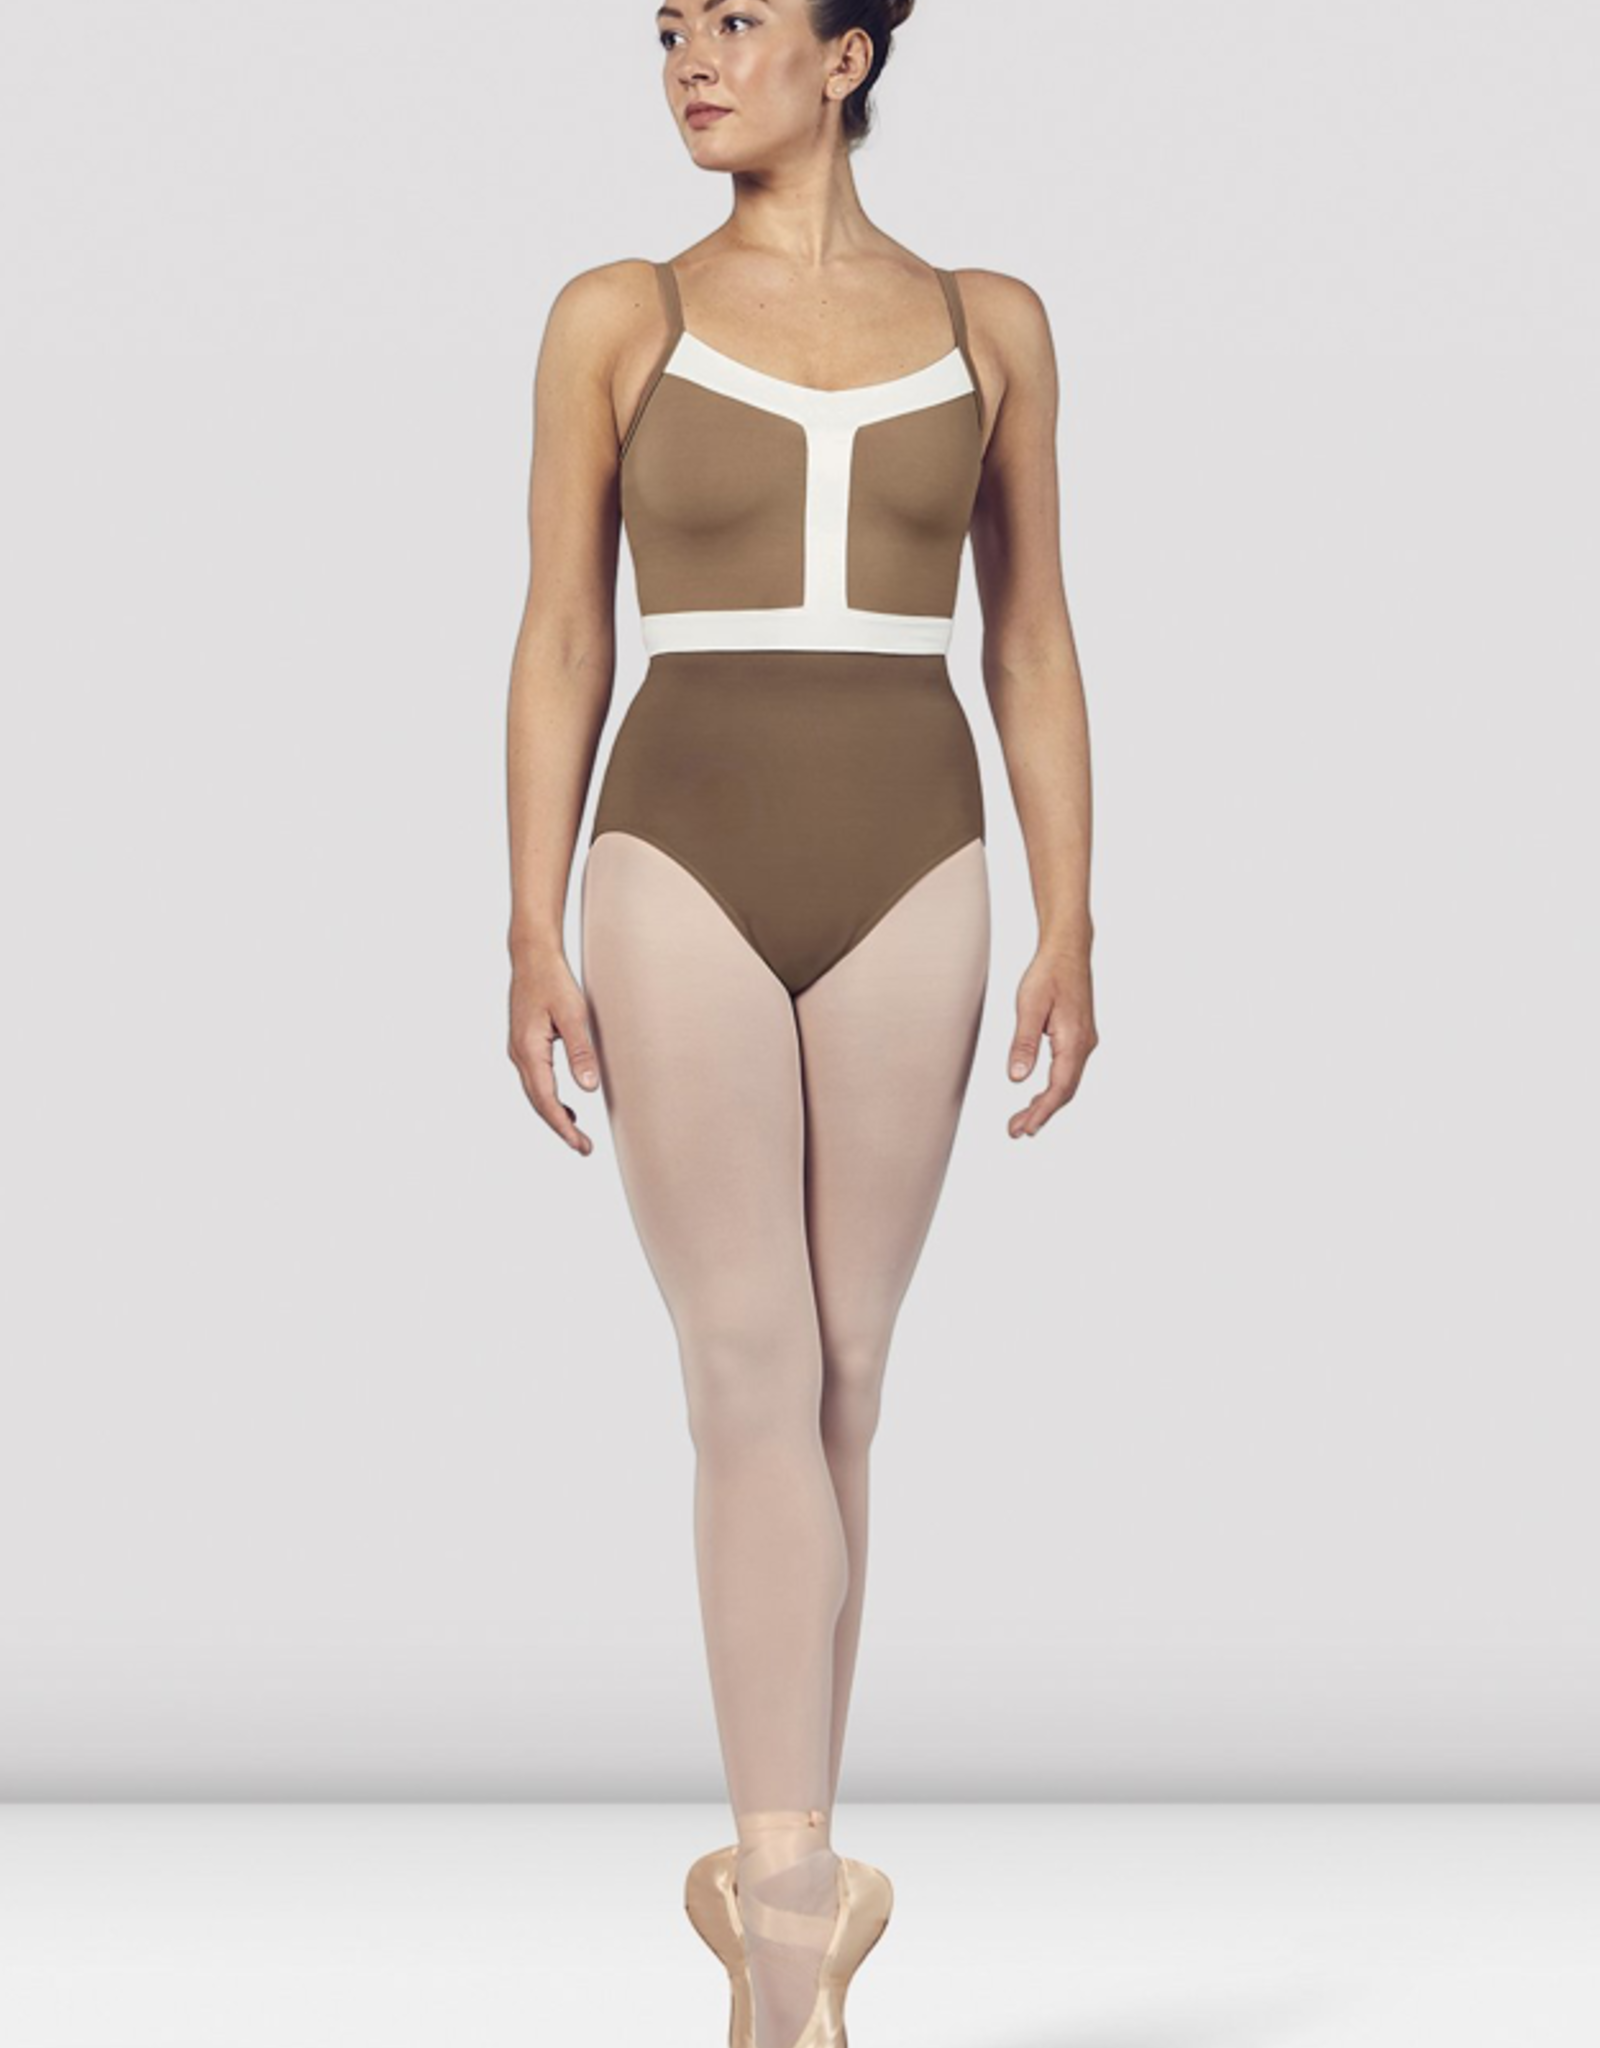 BLOCH AMORA ADULT CONTRAST COLOR PANEL CAMISOLE LEOTARD (L4937)